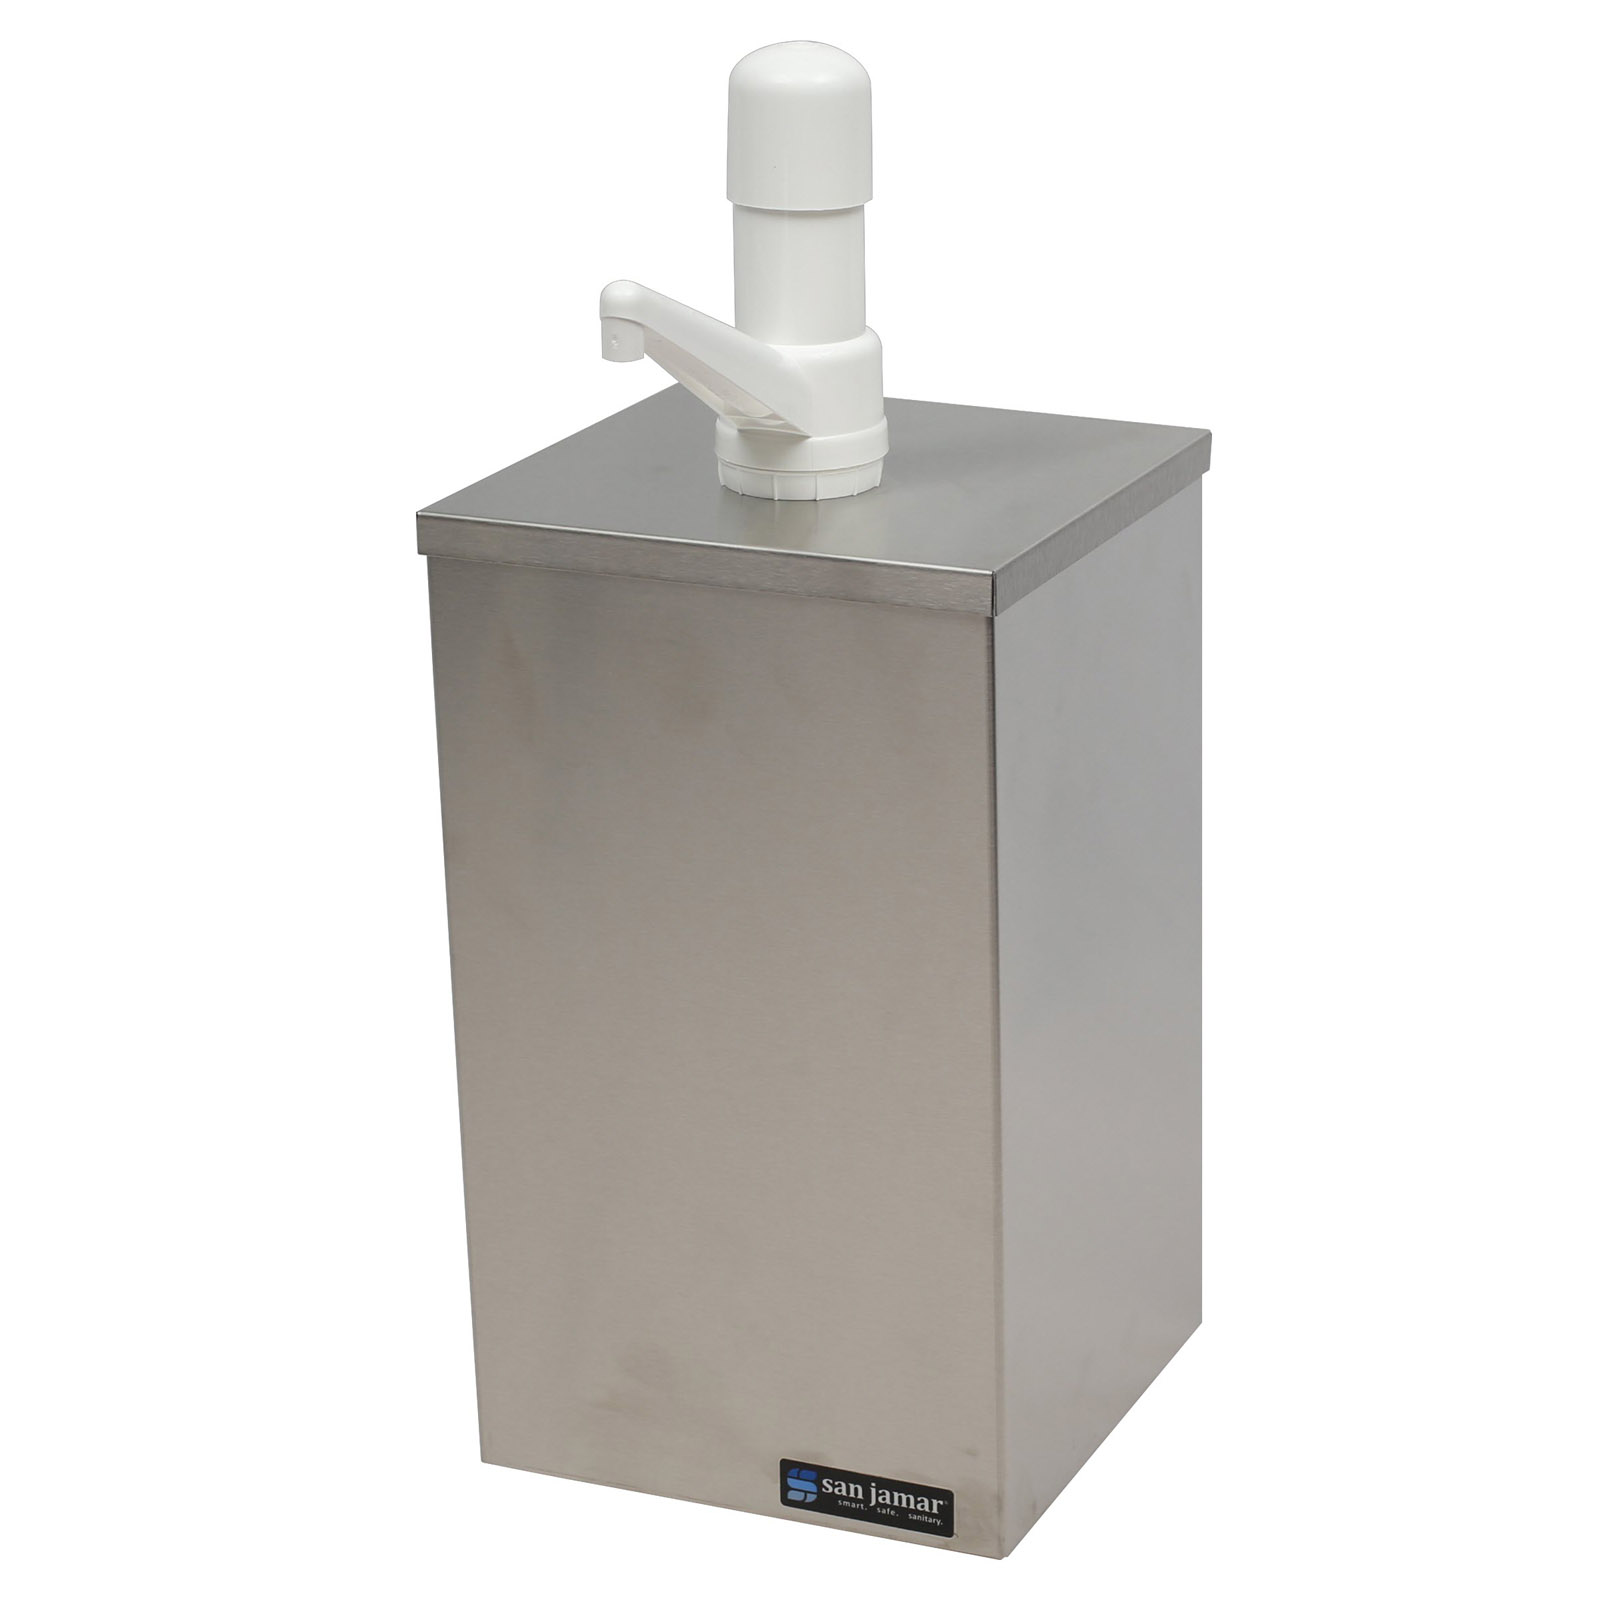 San Jamar P9800 condiment dispenser pump-style